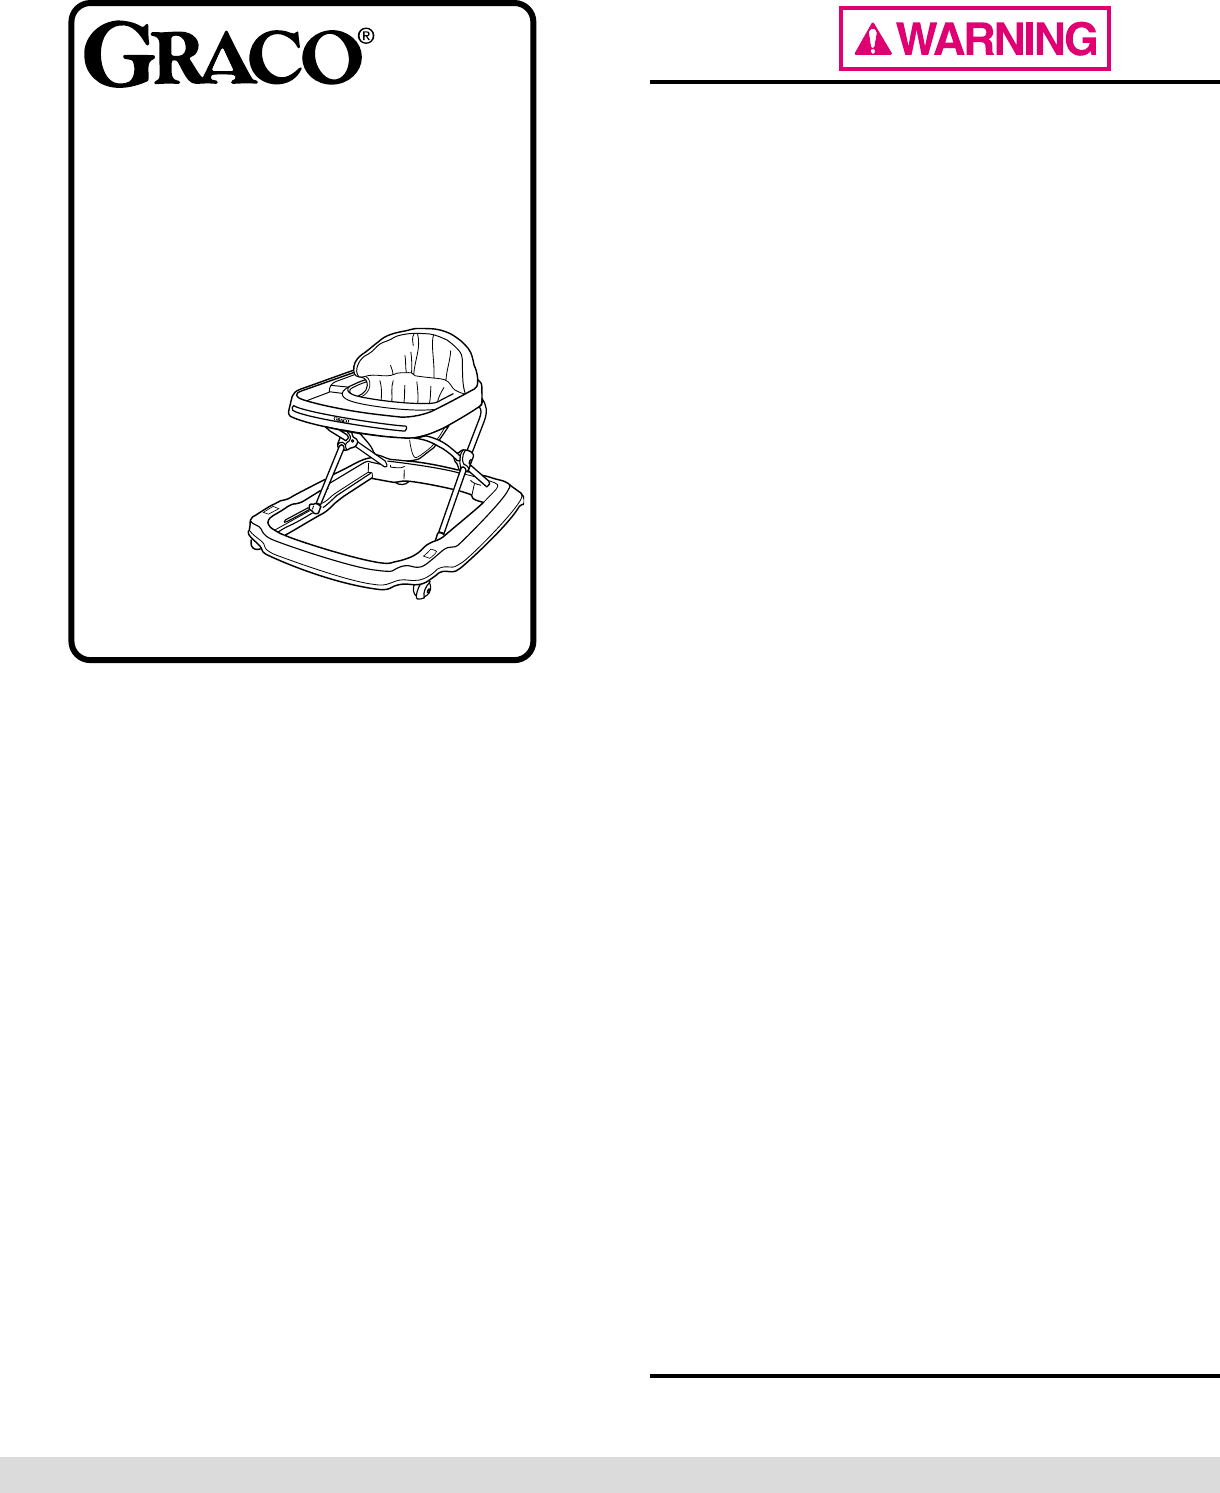 graco baby walker instructions